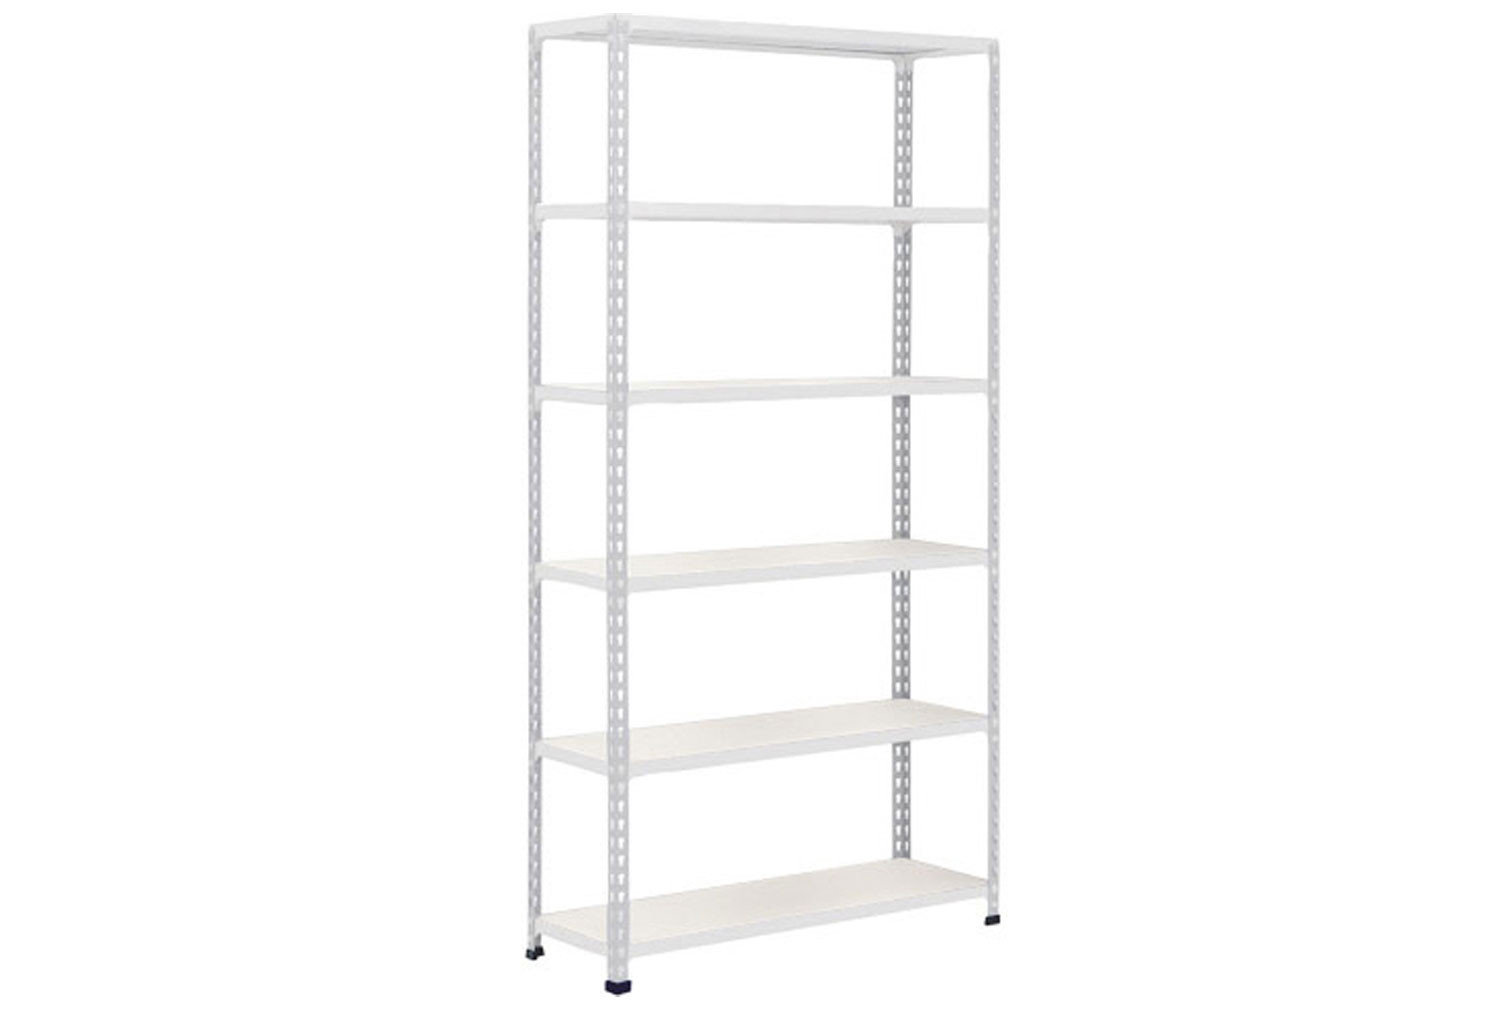 Rapid 2 Shelving With 6 Melamine Shelves 915wx2440h (Grey)